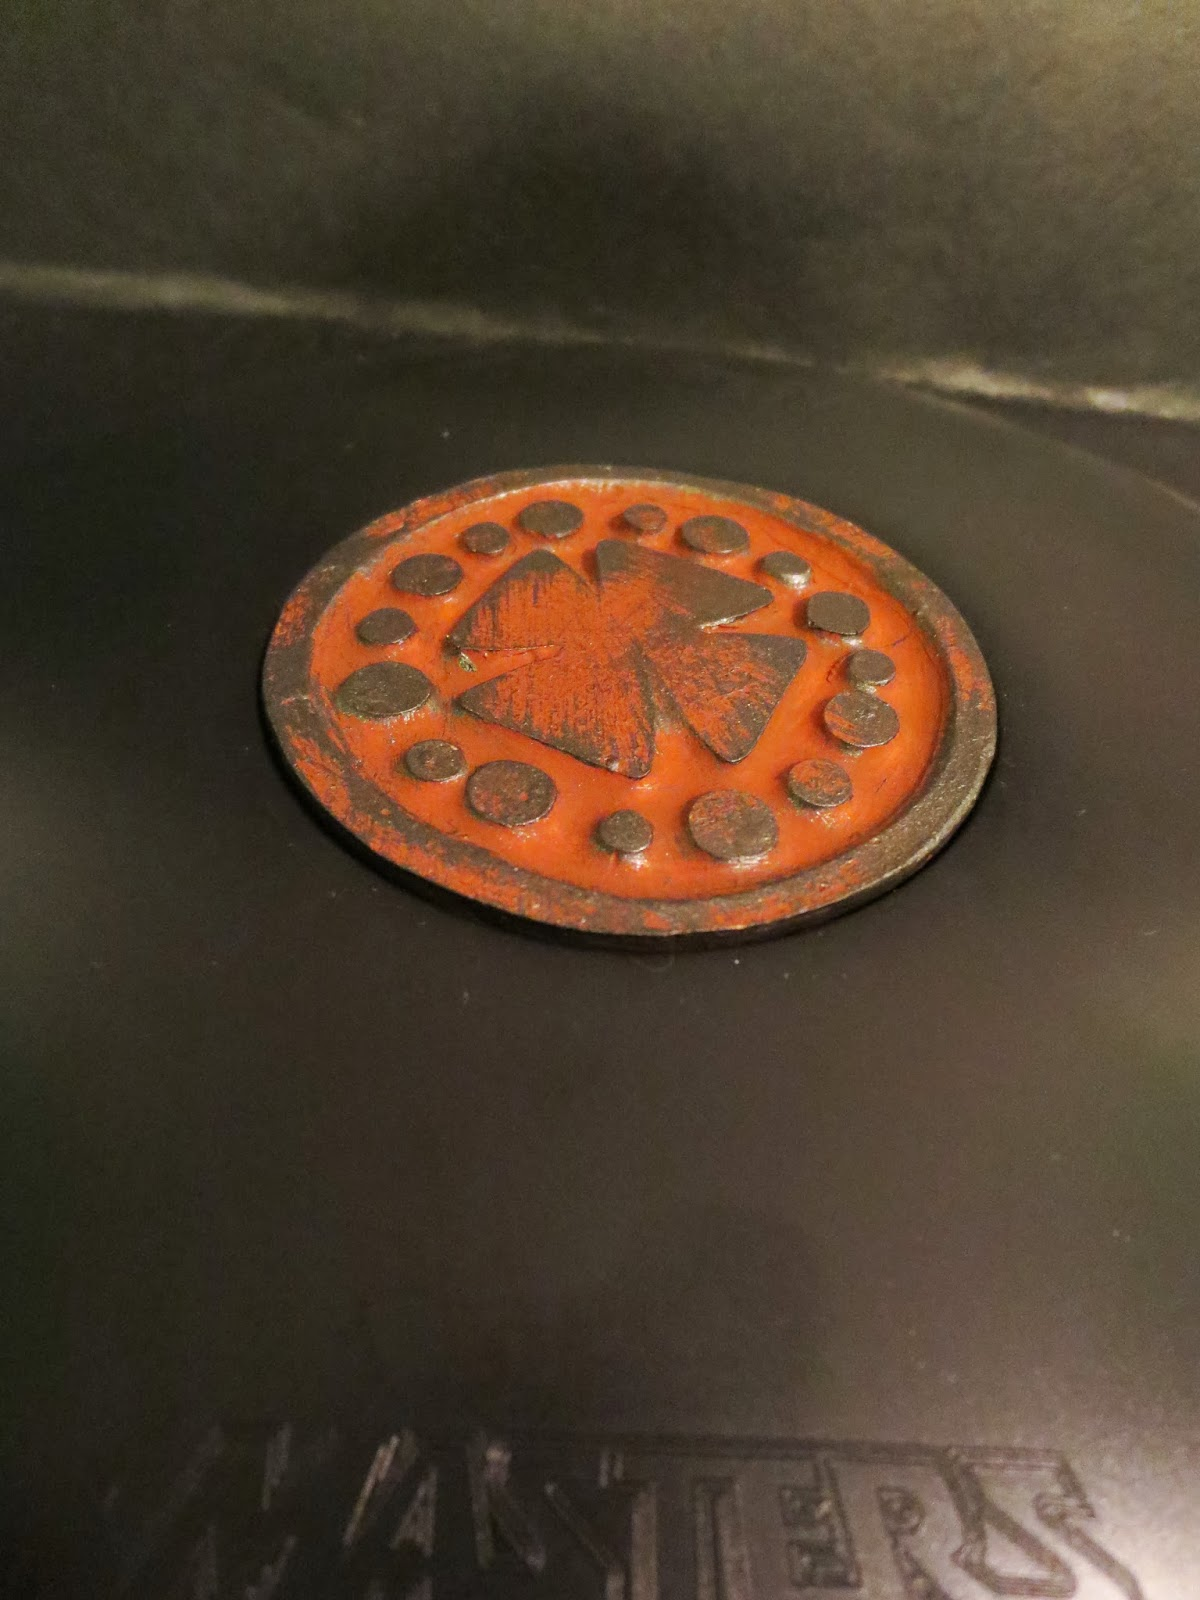 the epic review: action figure review: fortress armory manhole